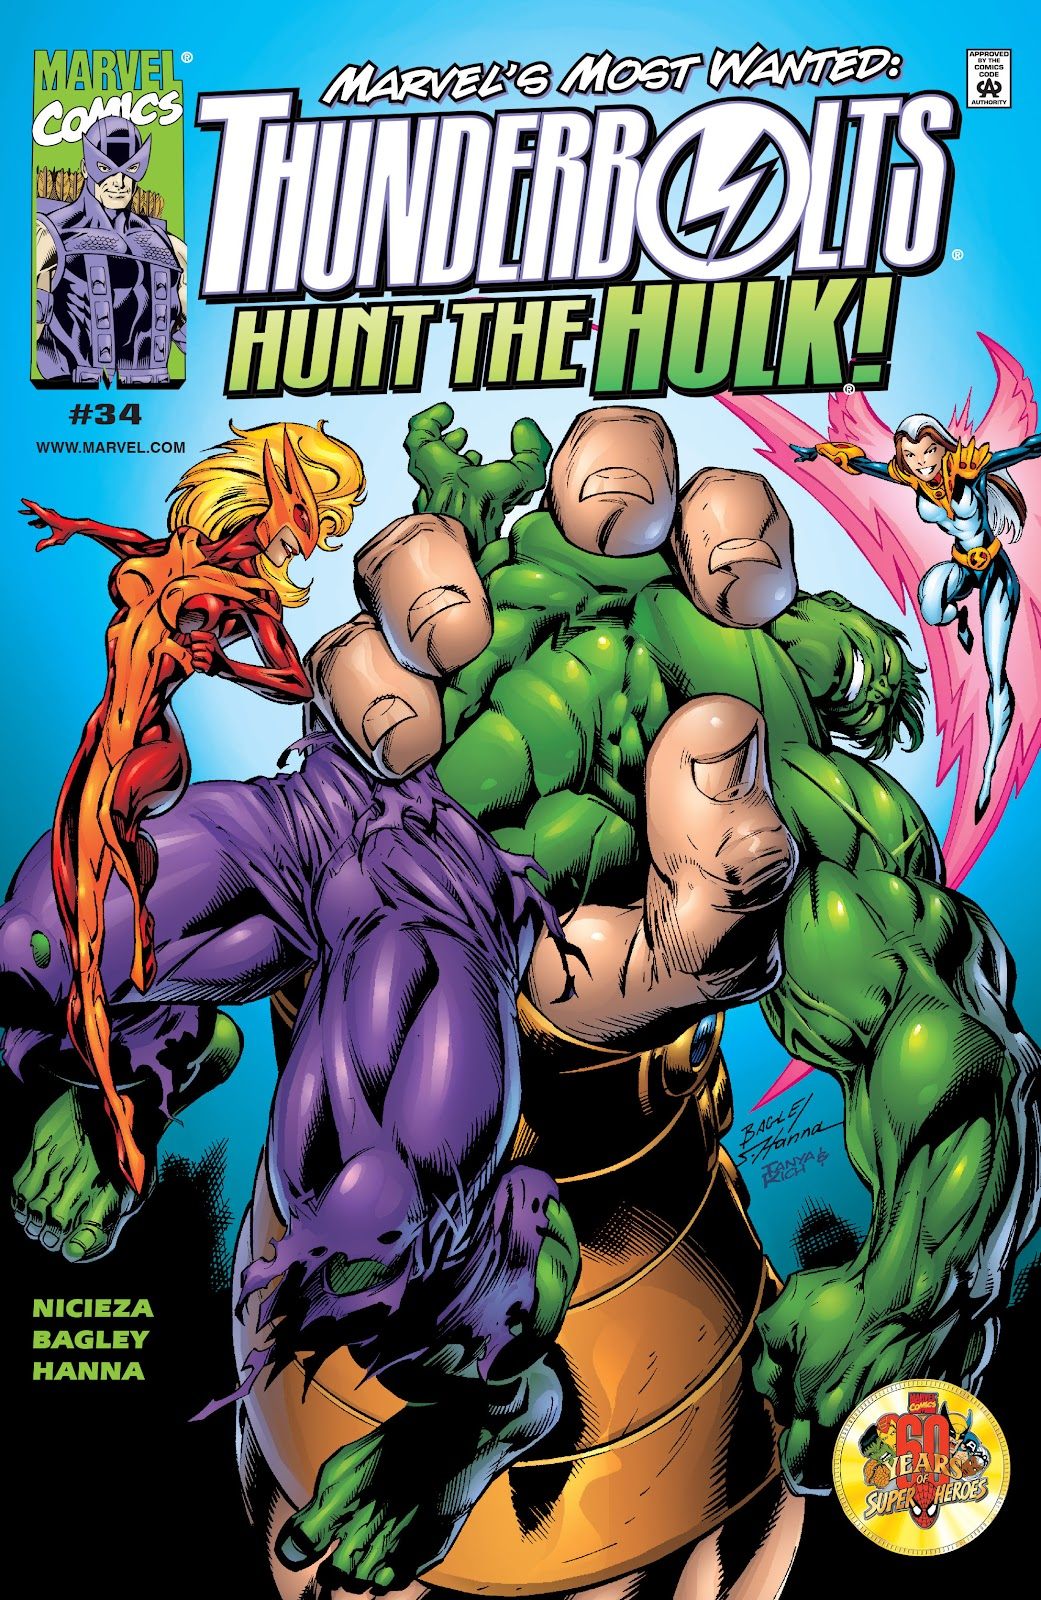 Read online Hawkeye & The Thunderbolts comic -  Issue # TPB 1 (Part 3) - 73